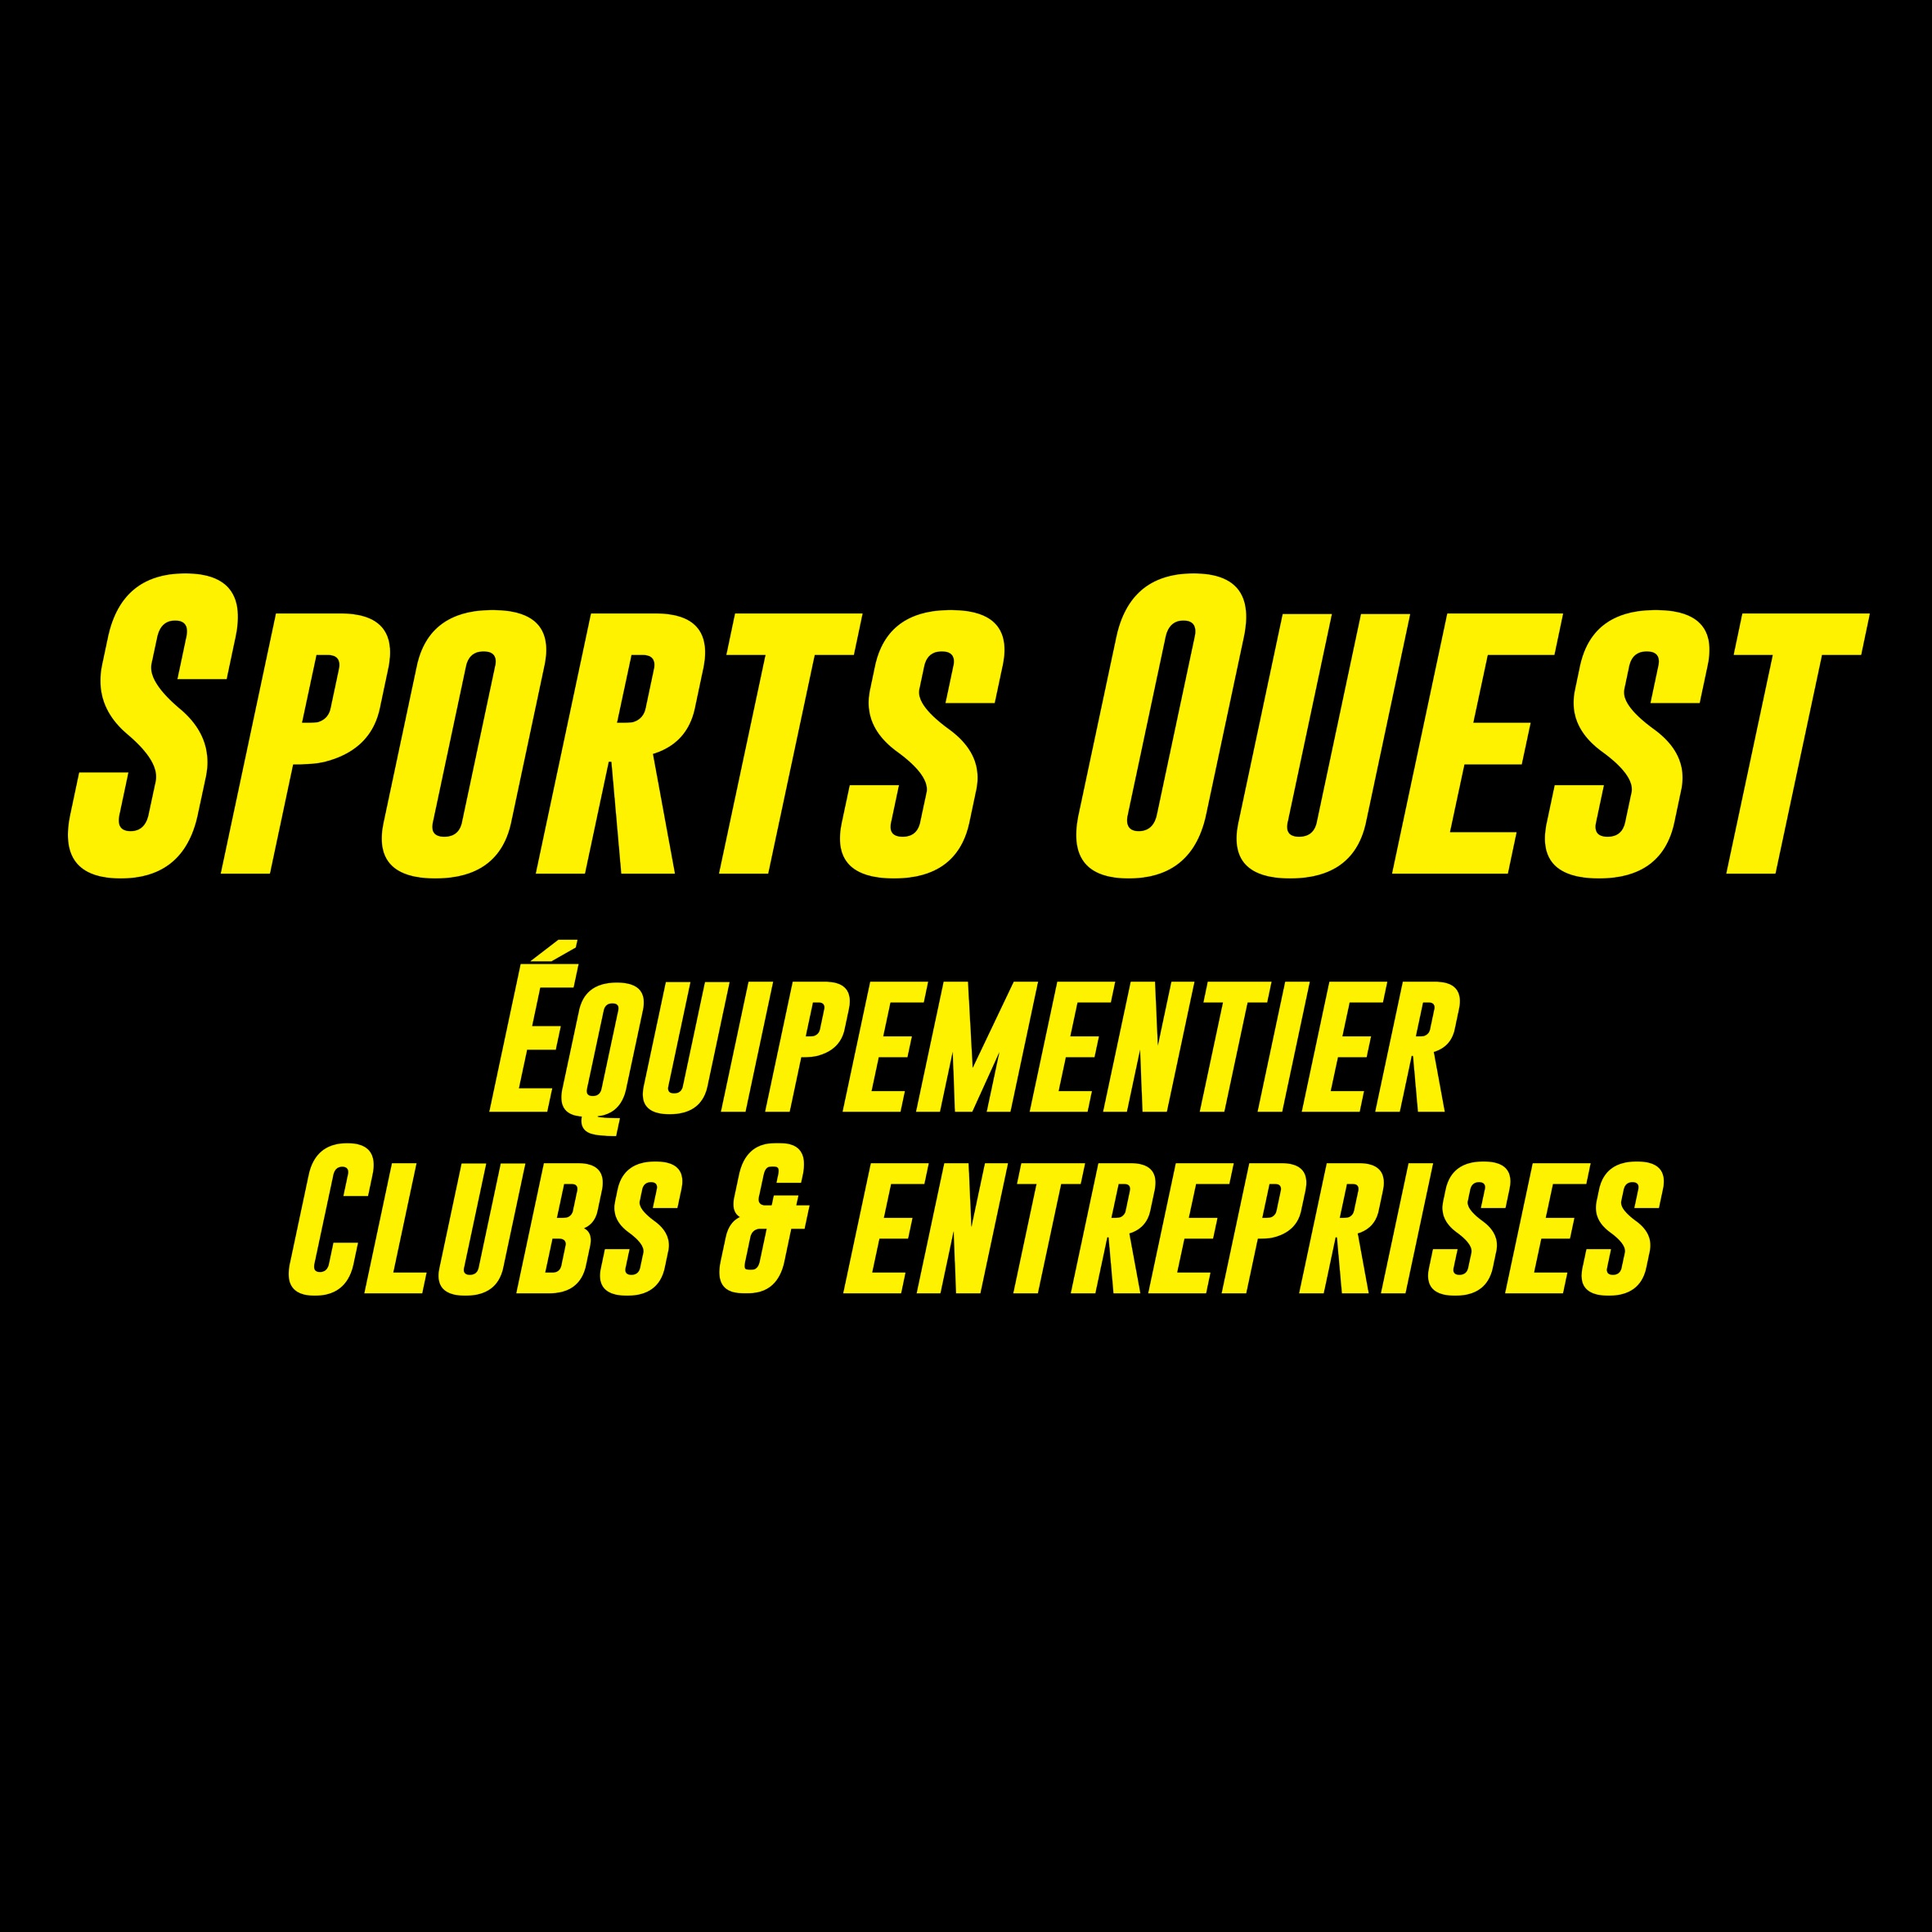 SPORTS OUEST EQUIPEMENTS